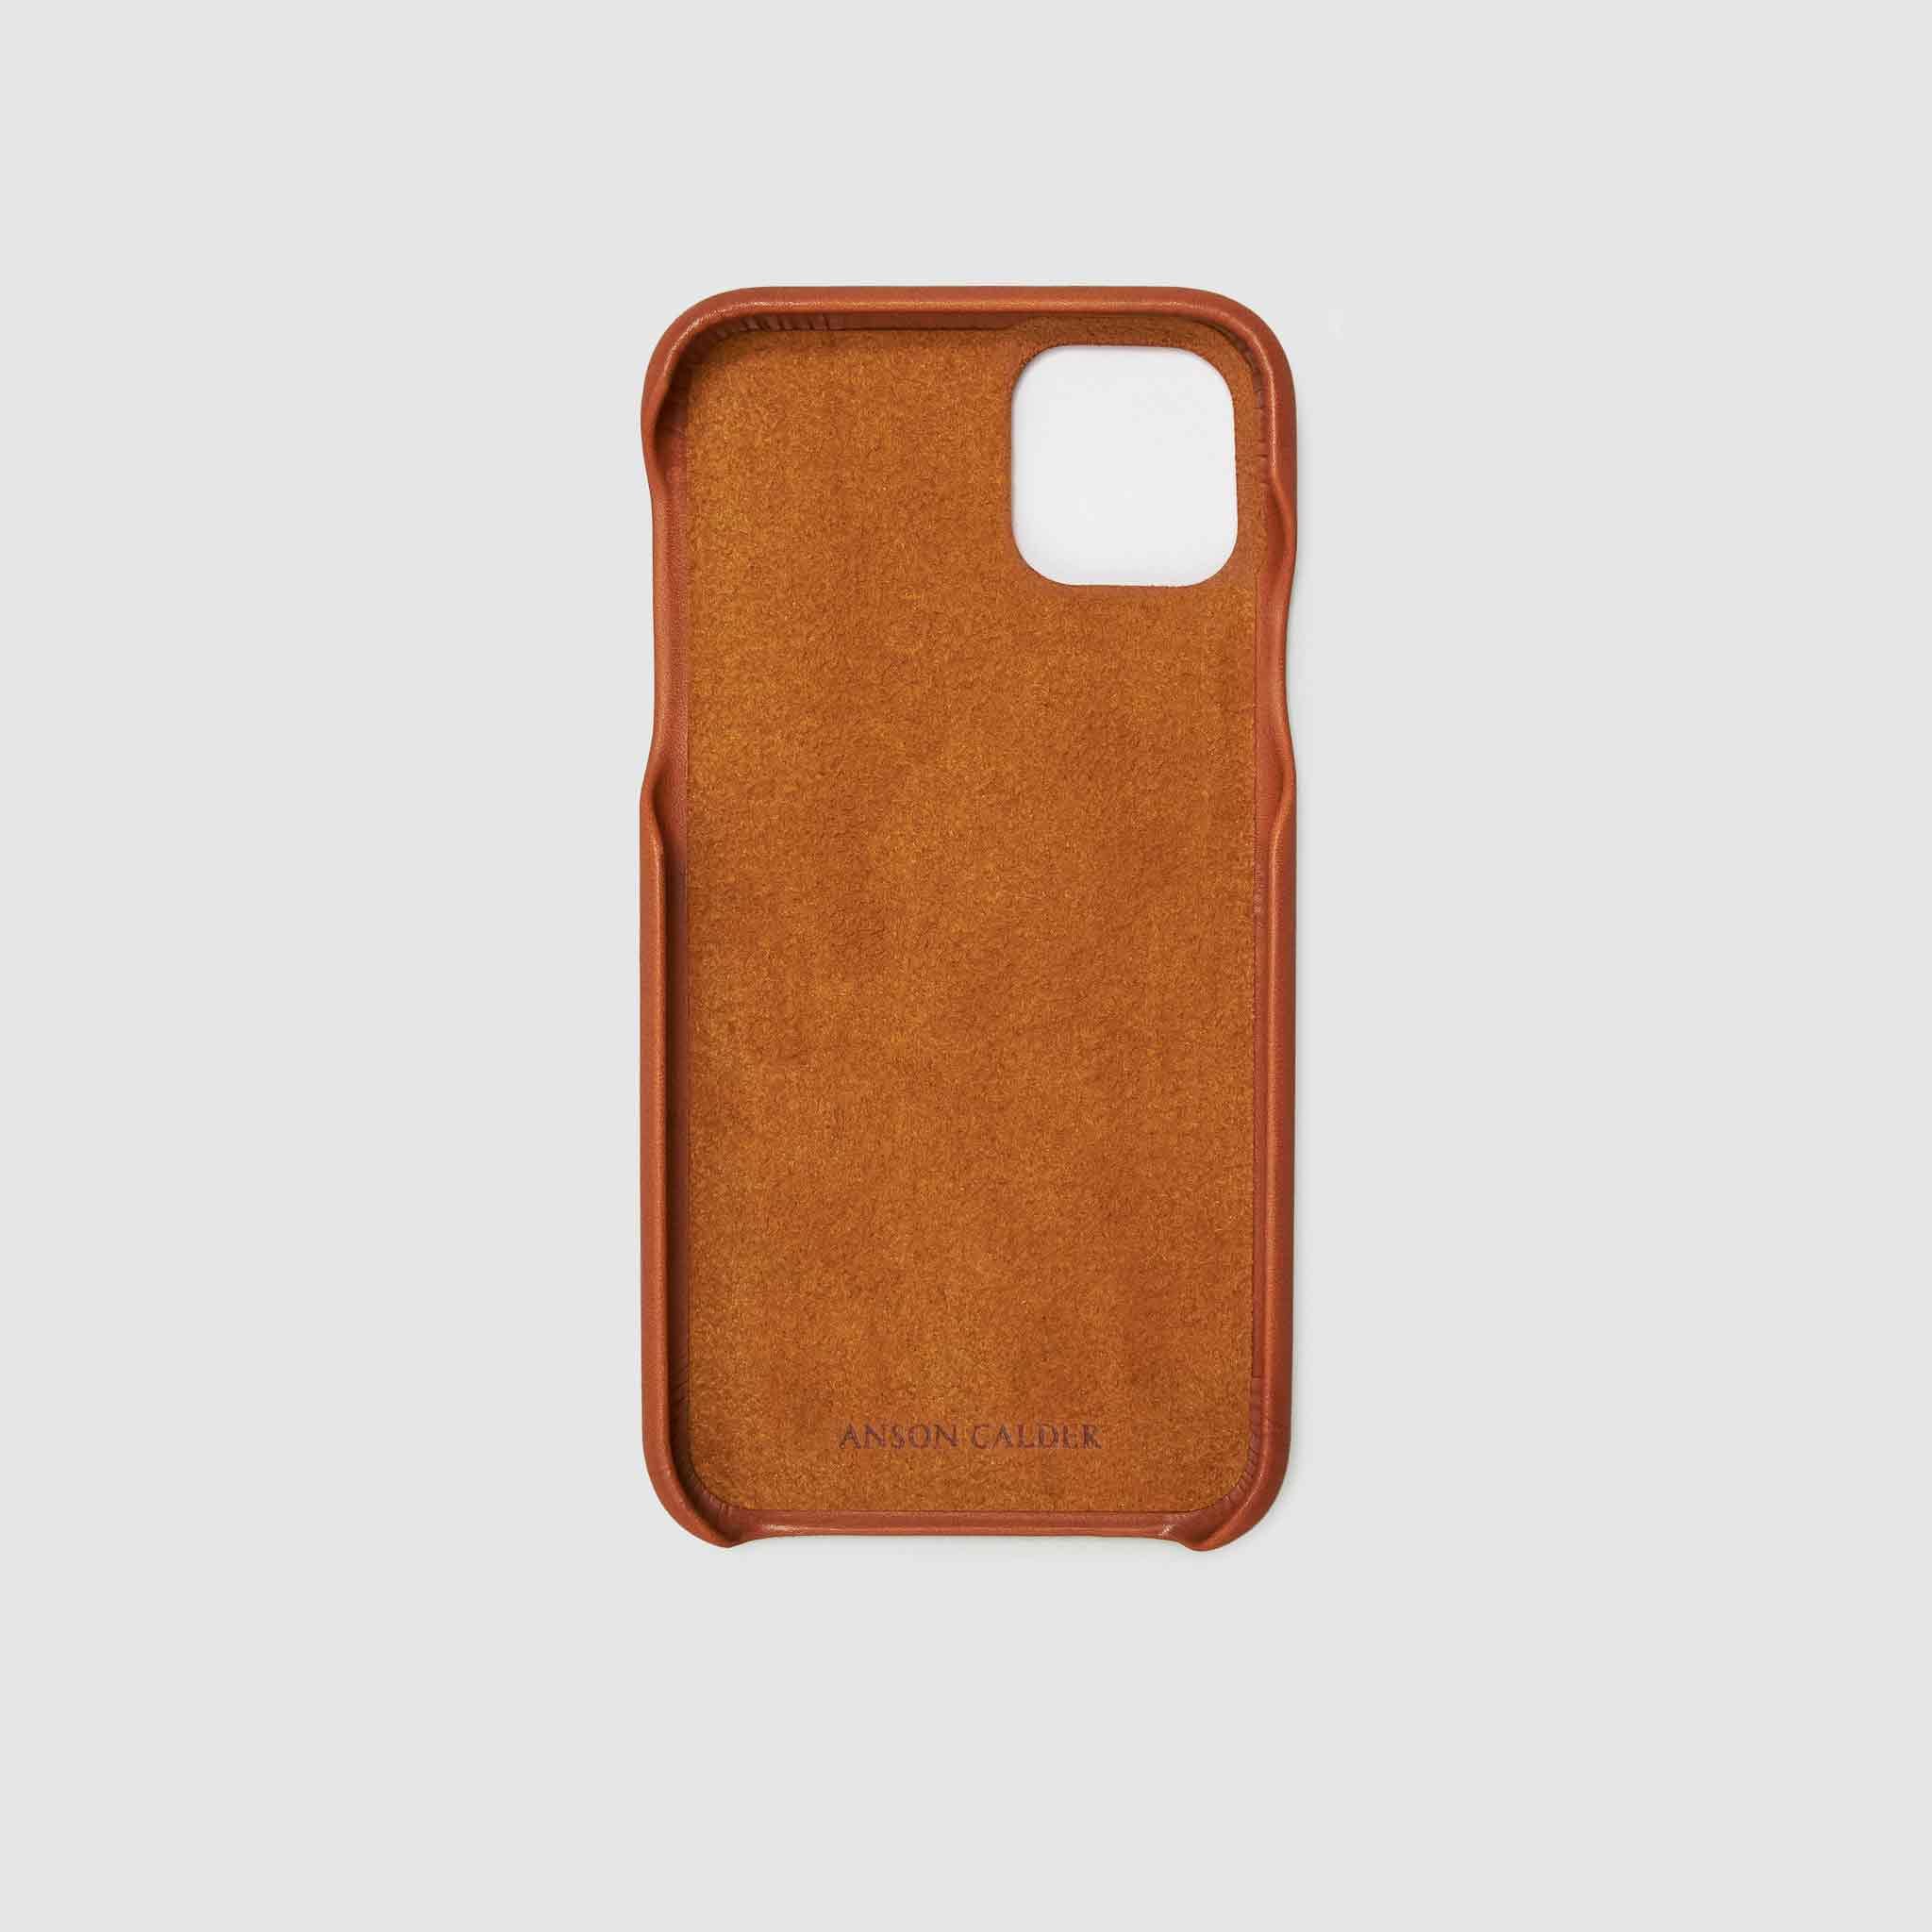 anson calder iphone case french calfskin 11 eleven pro max leather !iphone11pro-iphone11promax  _cognac